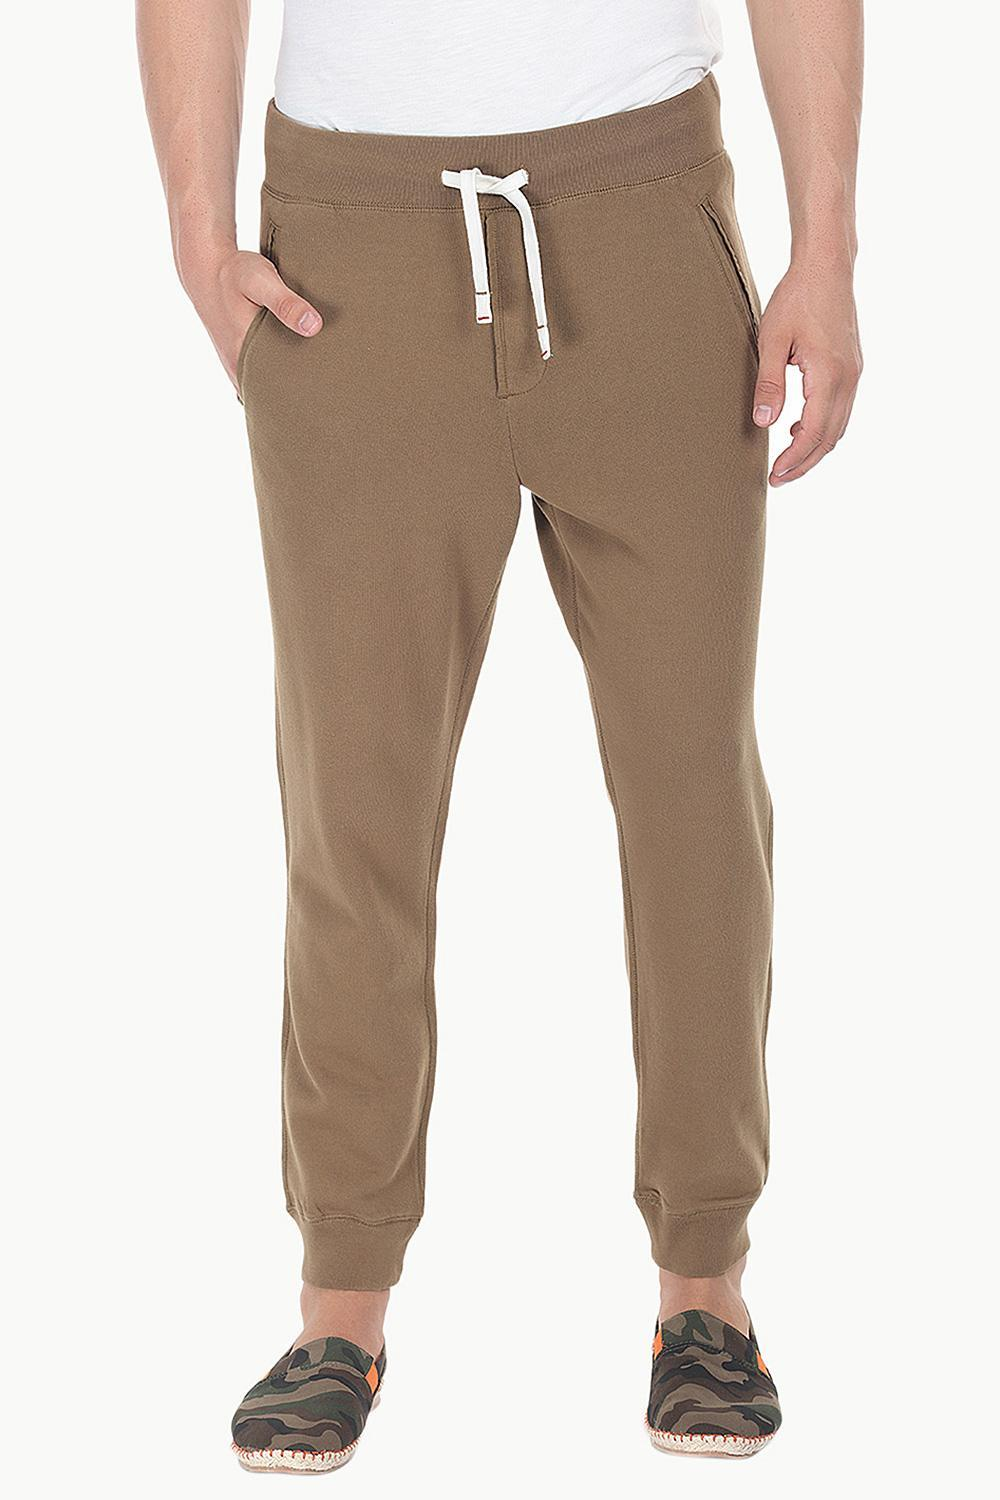 ed56f62f284045 Buy Online Caramel Brown Standard Fit Cuff Jogger Sweatpants for ...